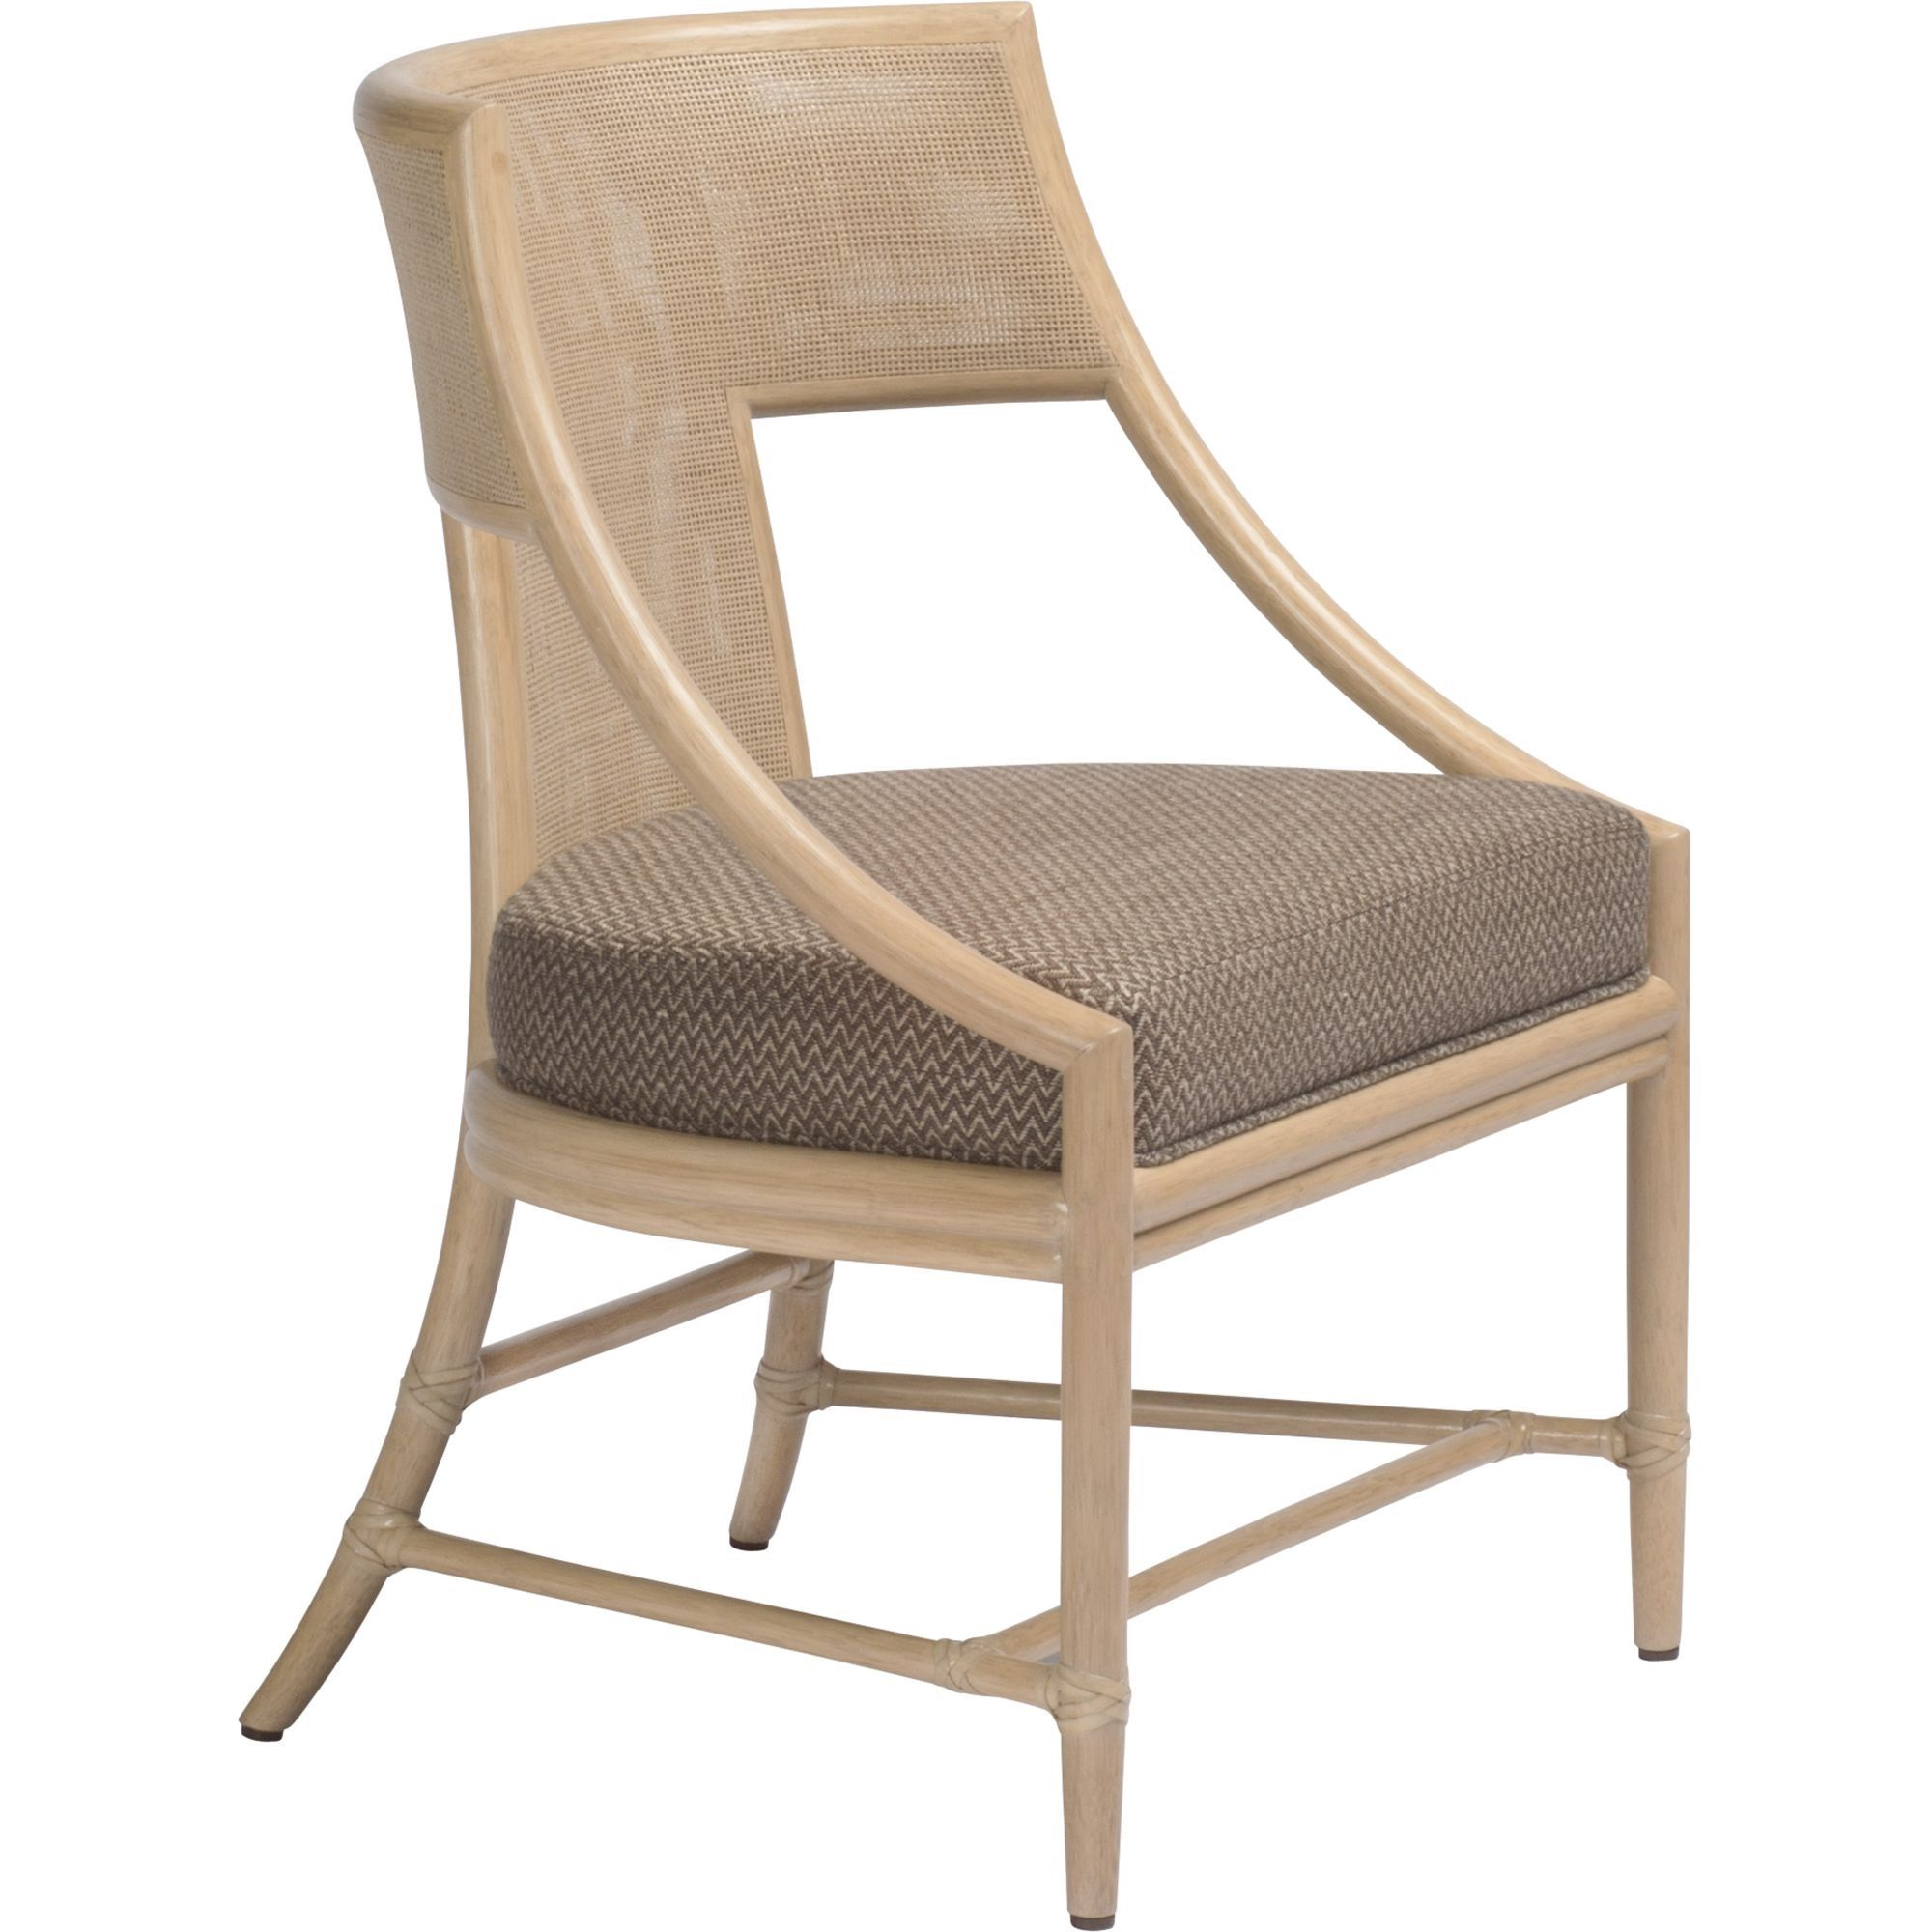 Buy Barbara Barry Classic Curve Arm Chair By McGuire Furniture